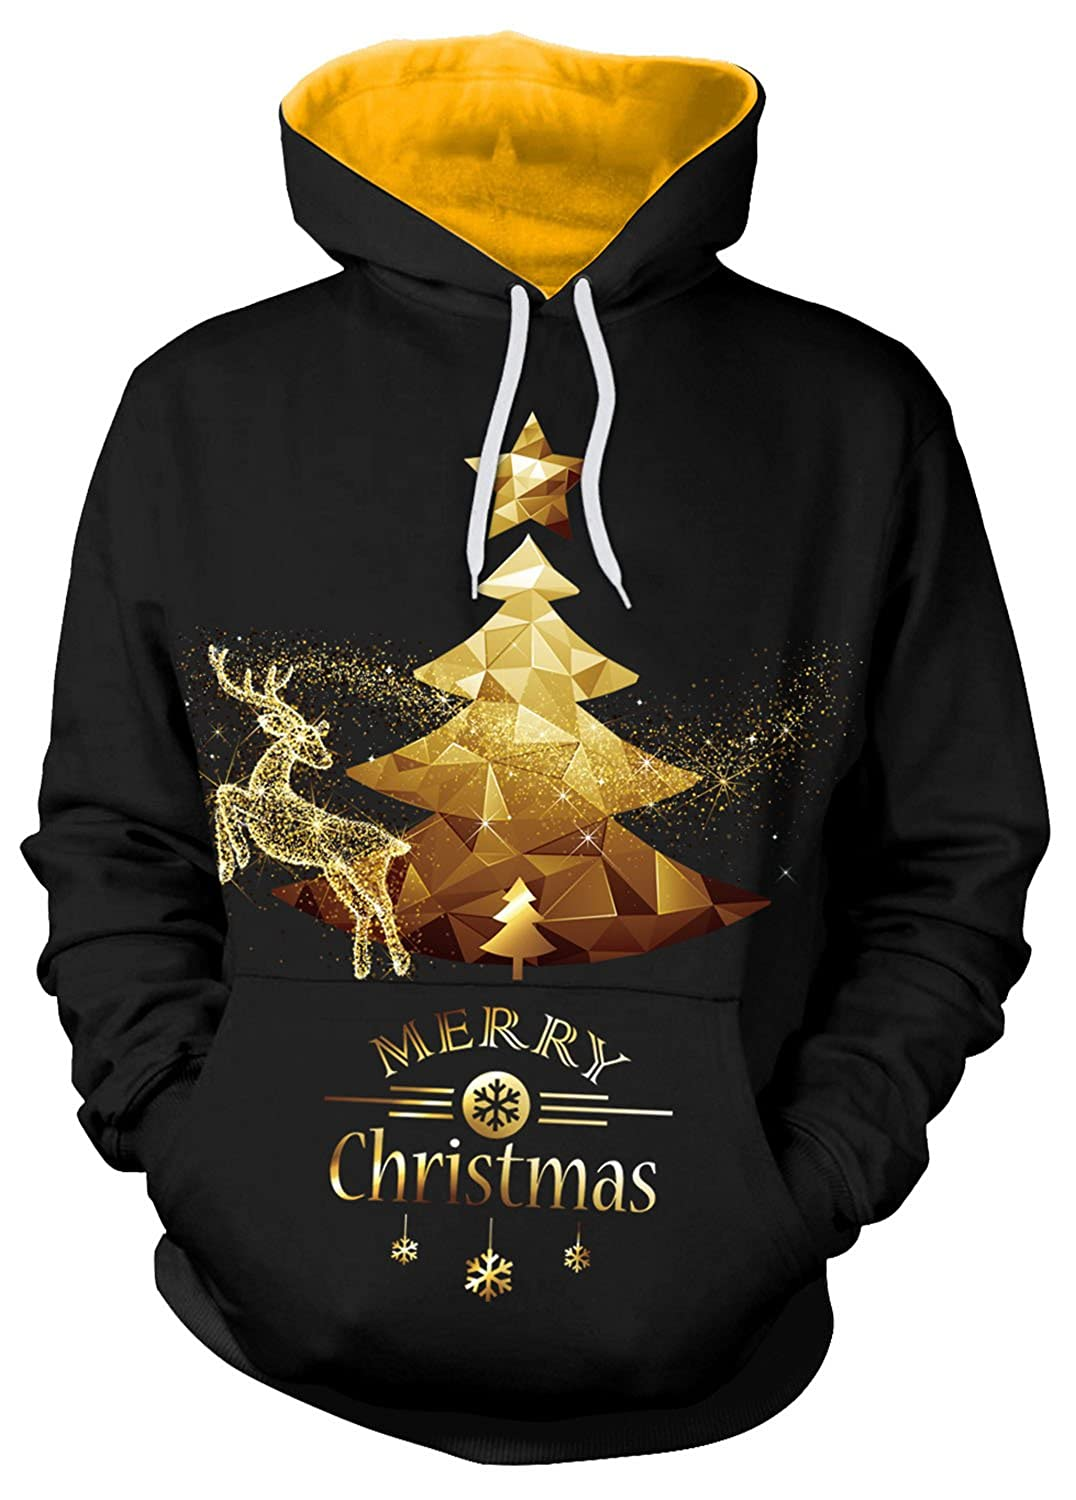 Sister Amy Couple Cute 3D Santa Print Ugly Christmas Pocket Sweatshirt Hoodies